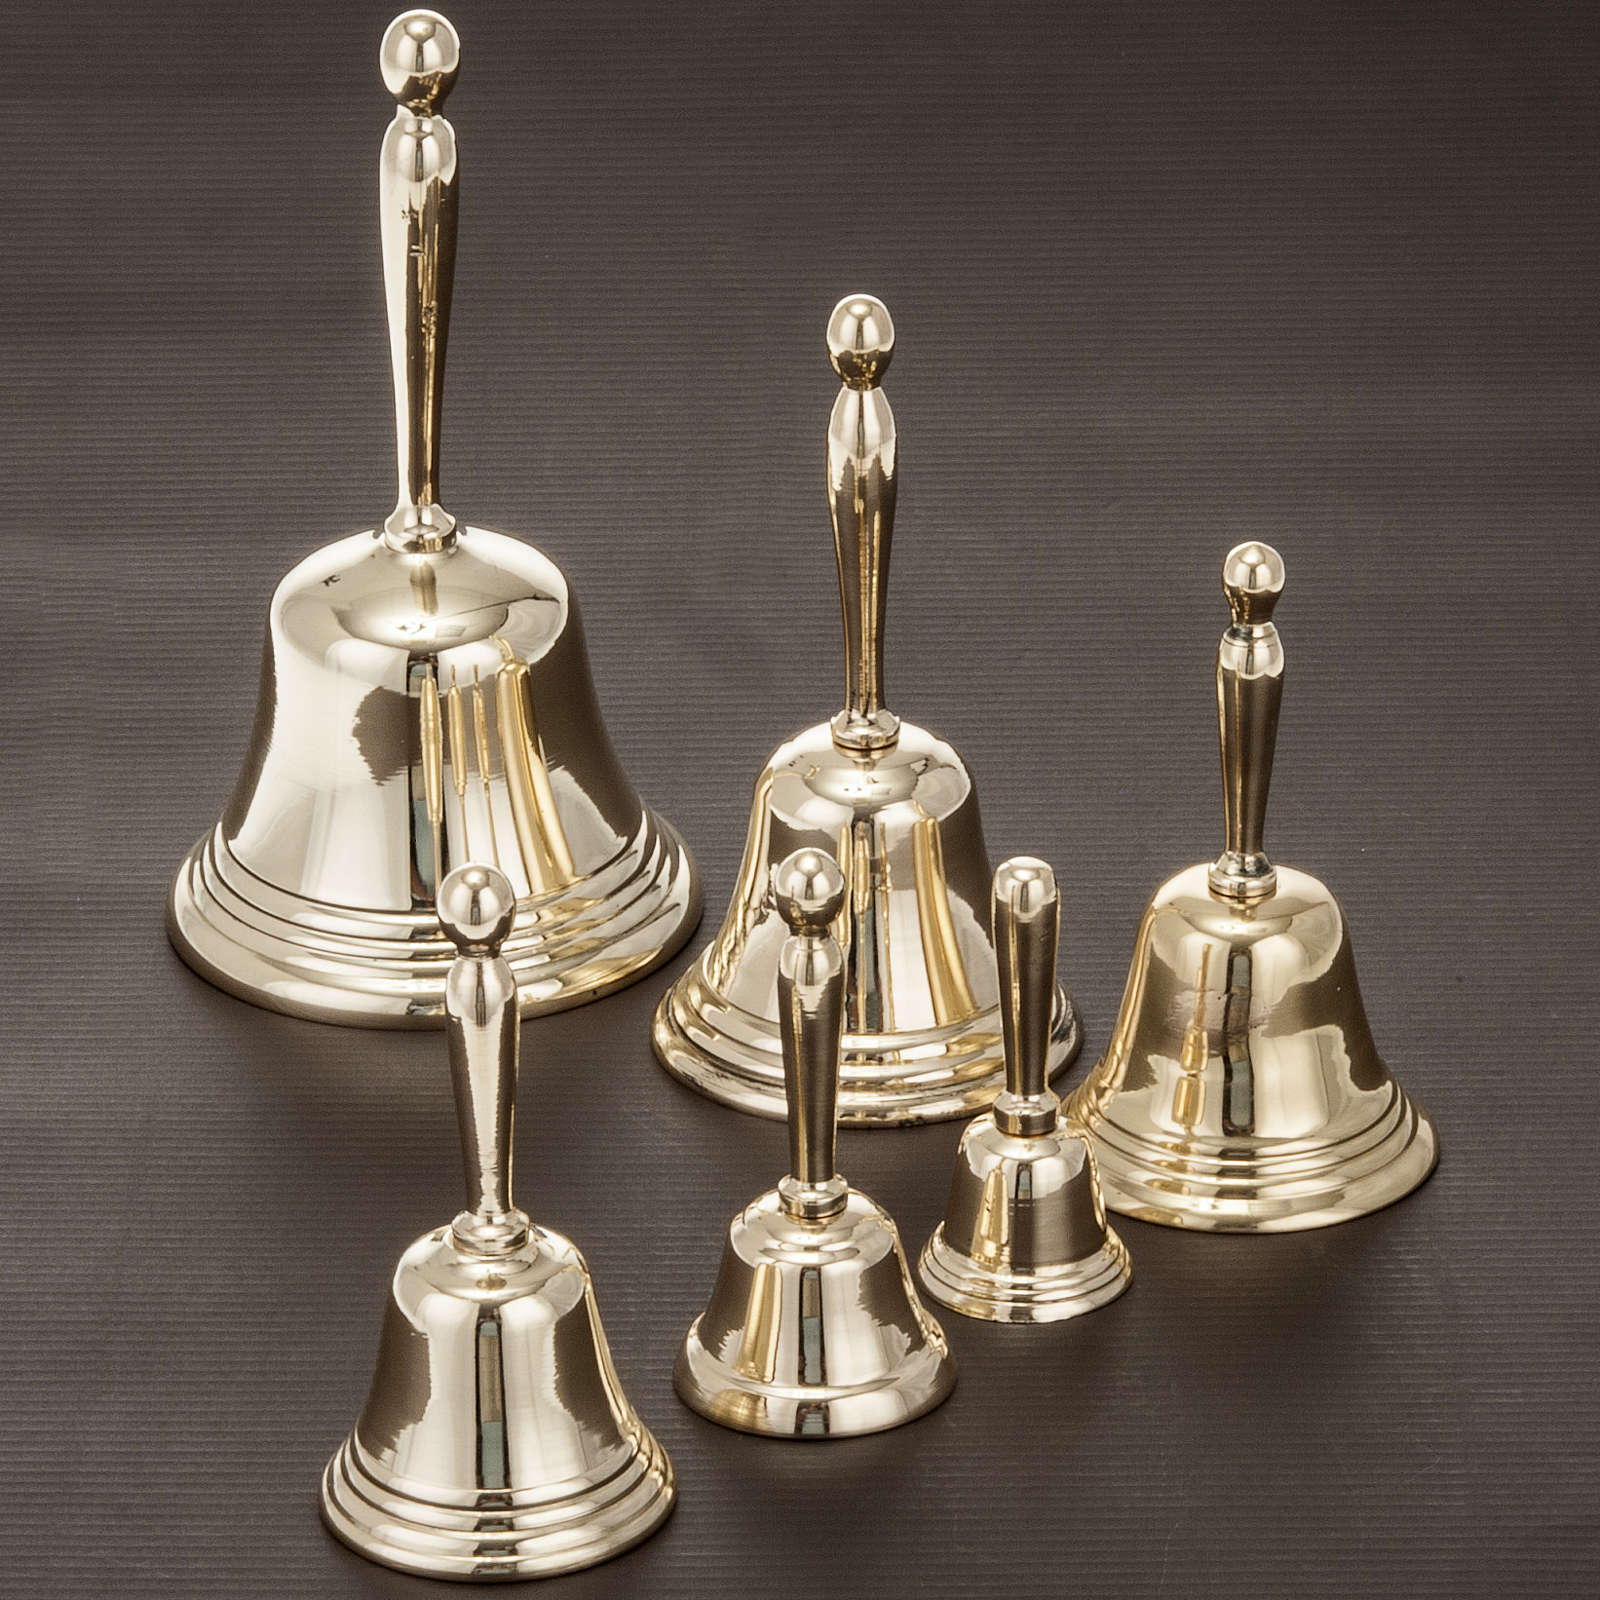 Liturgical bell with golden handle different sizes 3